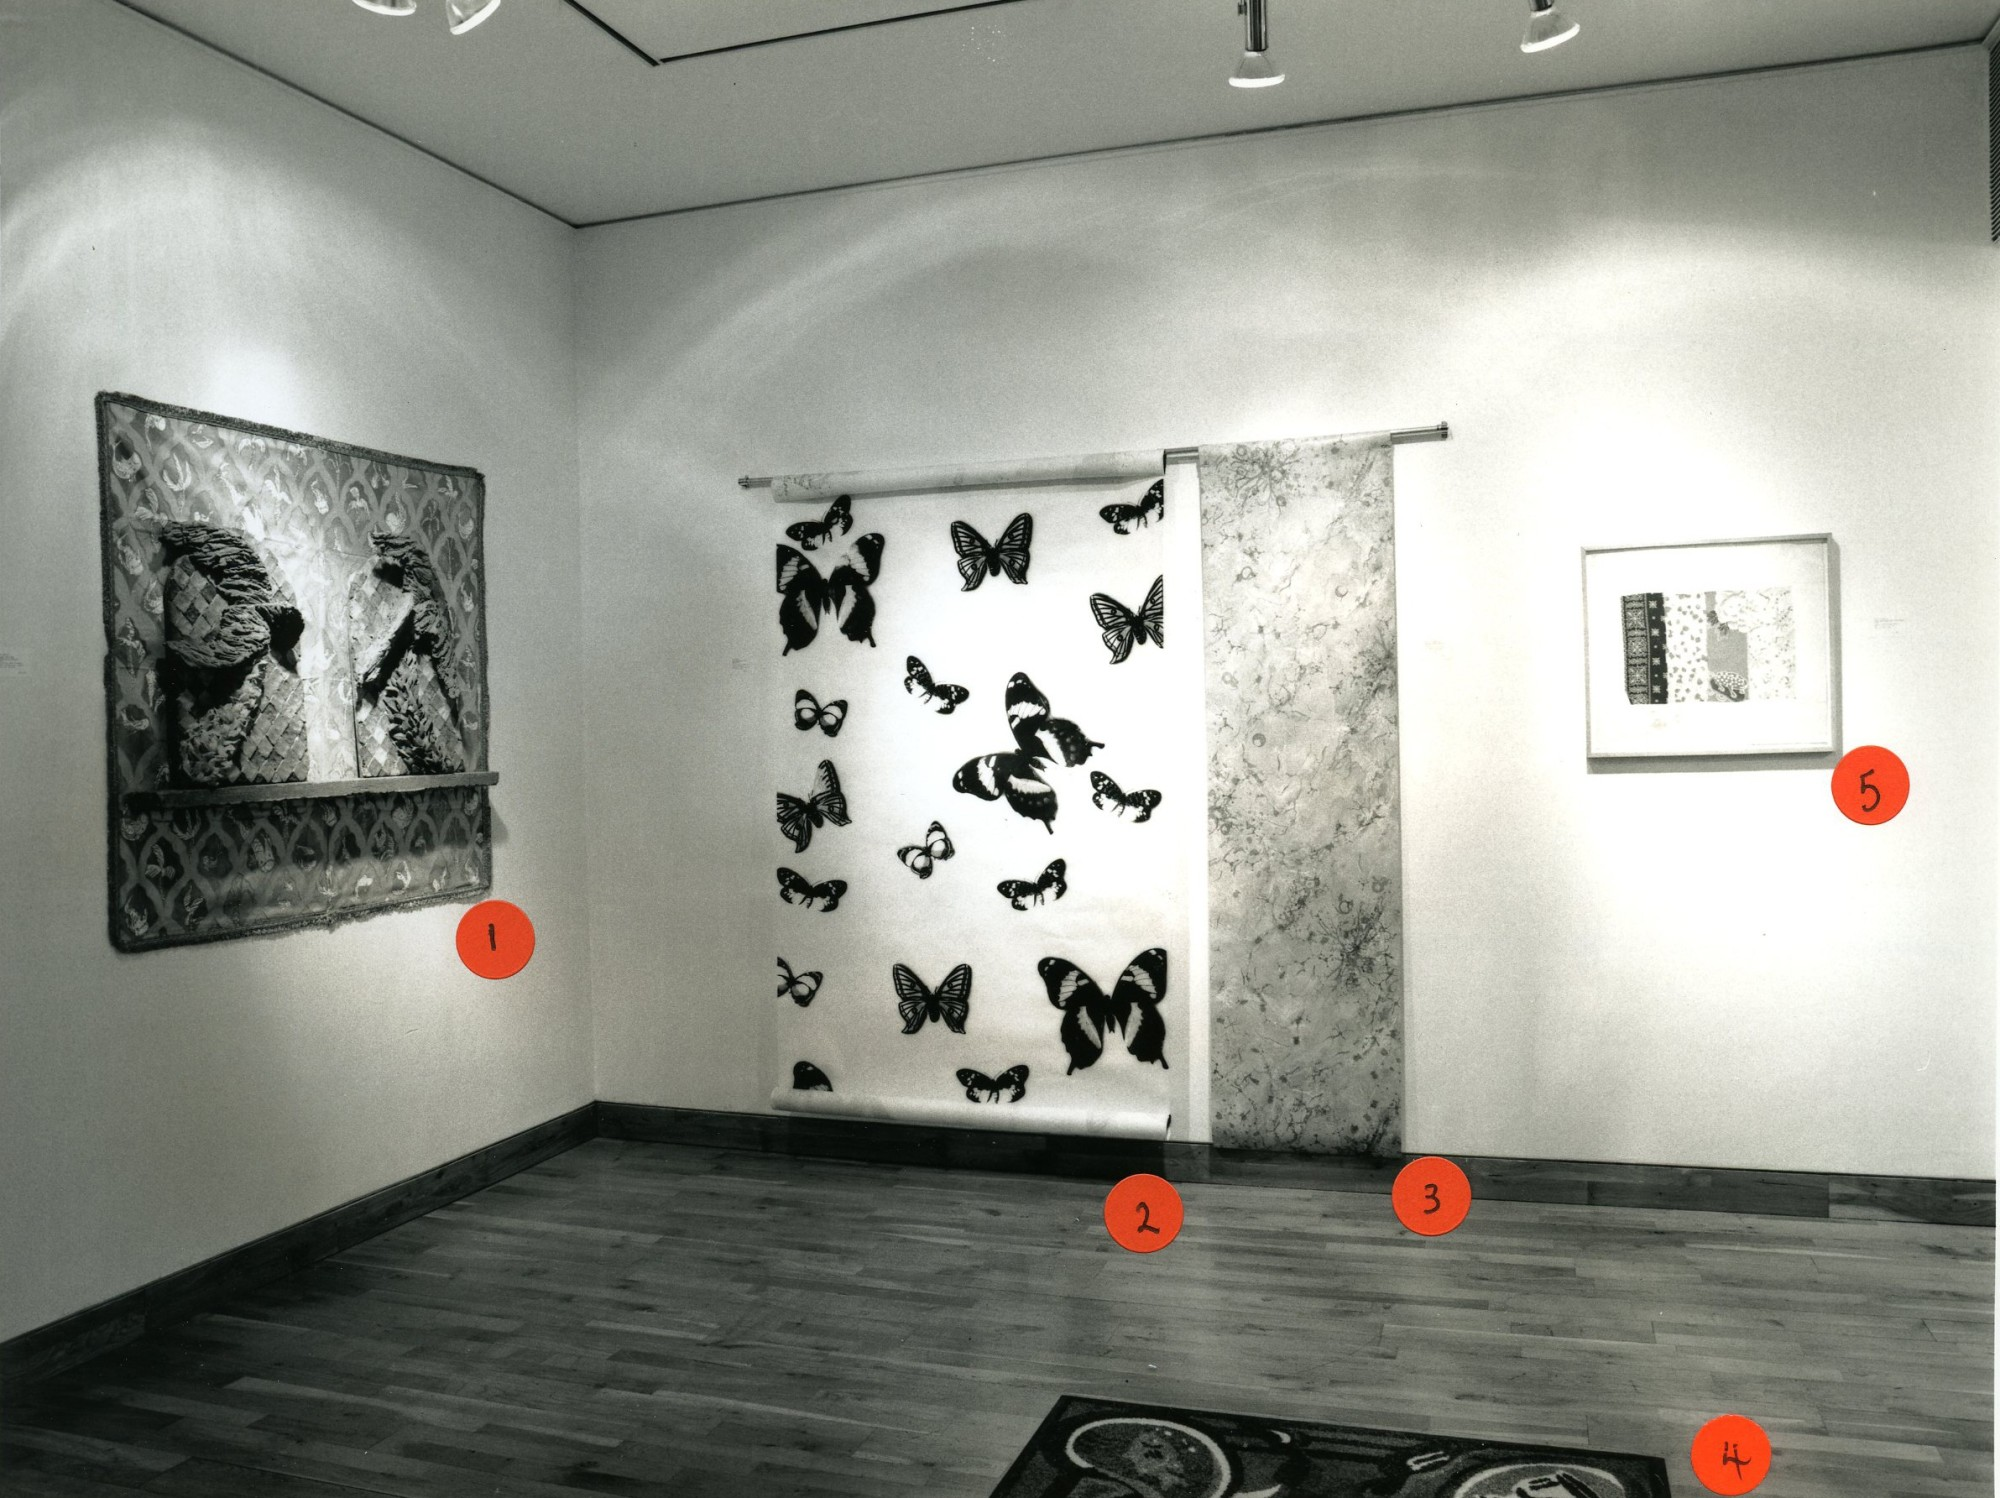 """<span class=""""link fancybox-details-link""""><a href=""""/exhibitions/153/works/image_standalone655/"""">View Detail Page</a></span><p>HOLLYBURY USA   A REFLECTION ON BLOOMSBURY   23 NOV - 23 DEC 1999   Installation View</p>"""